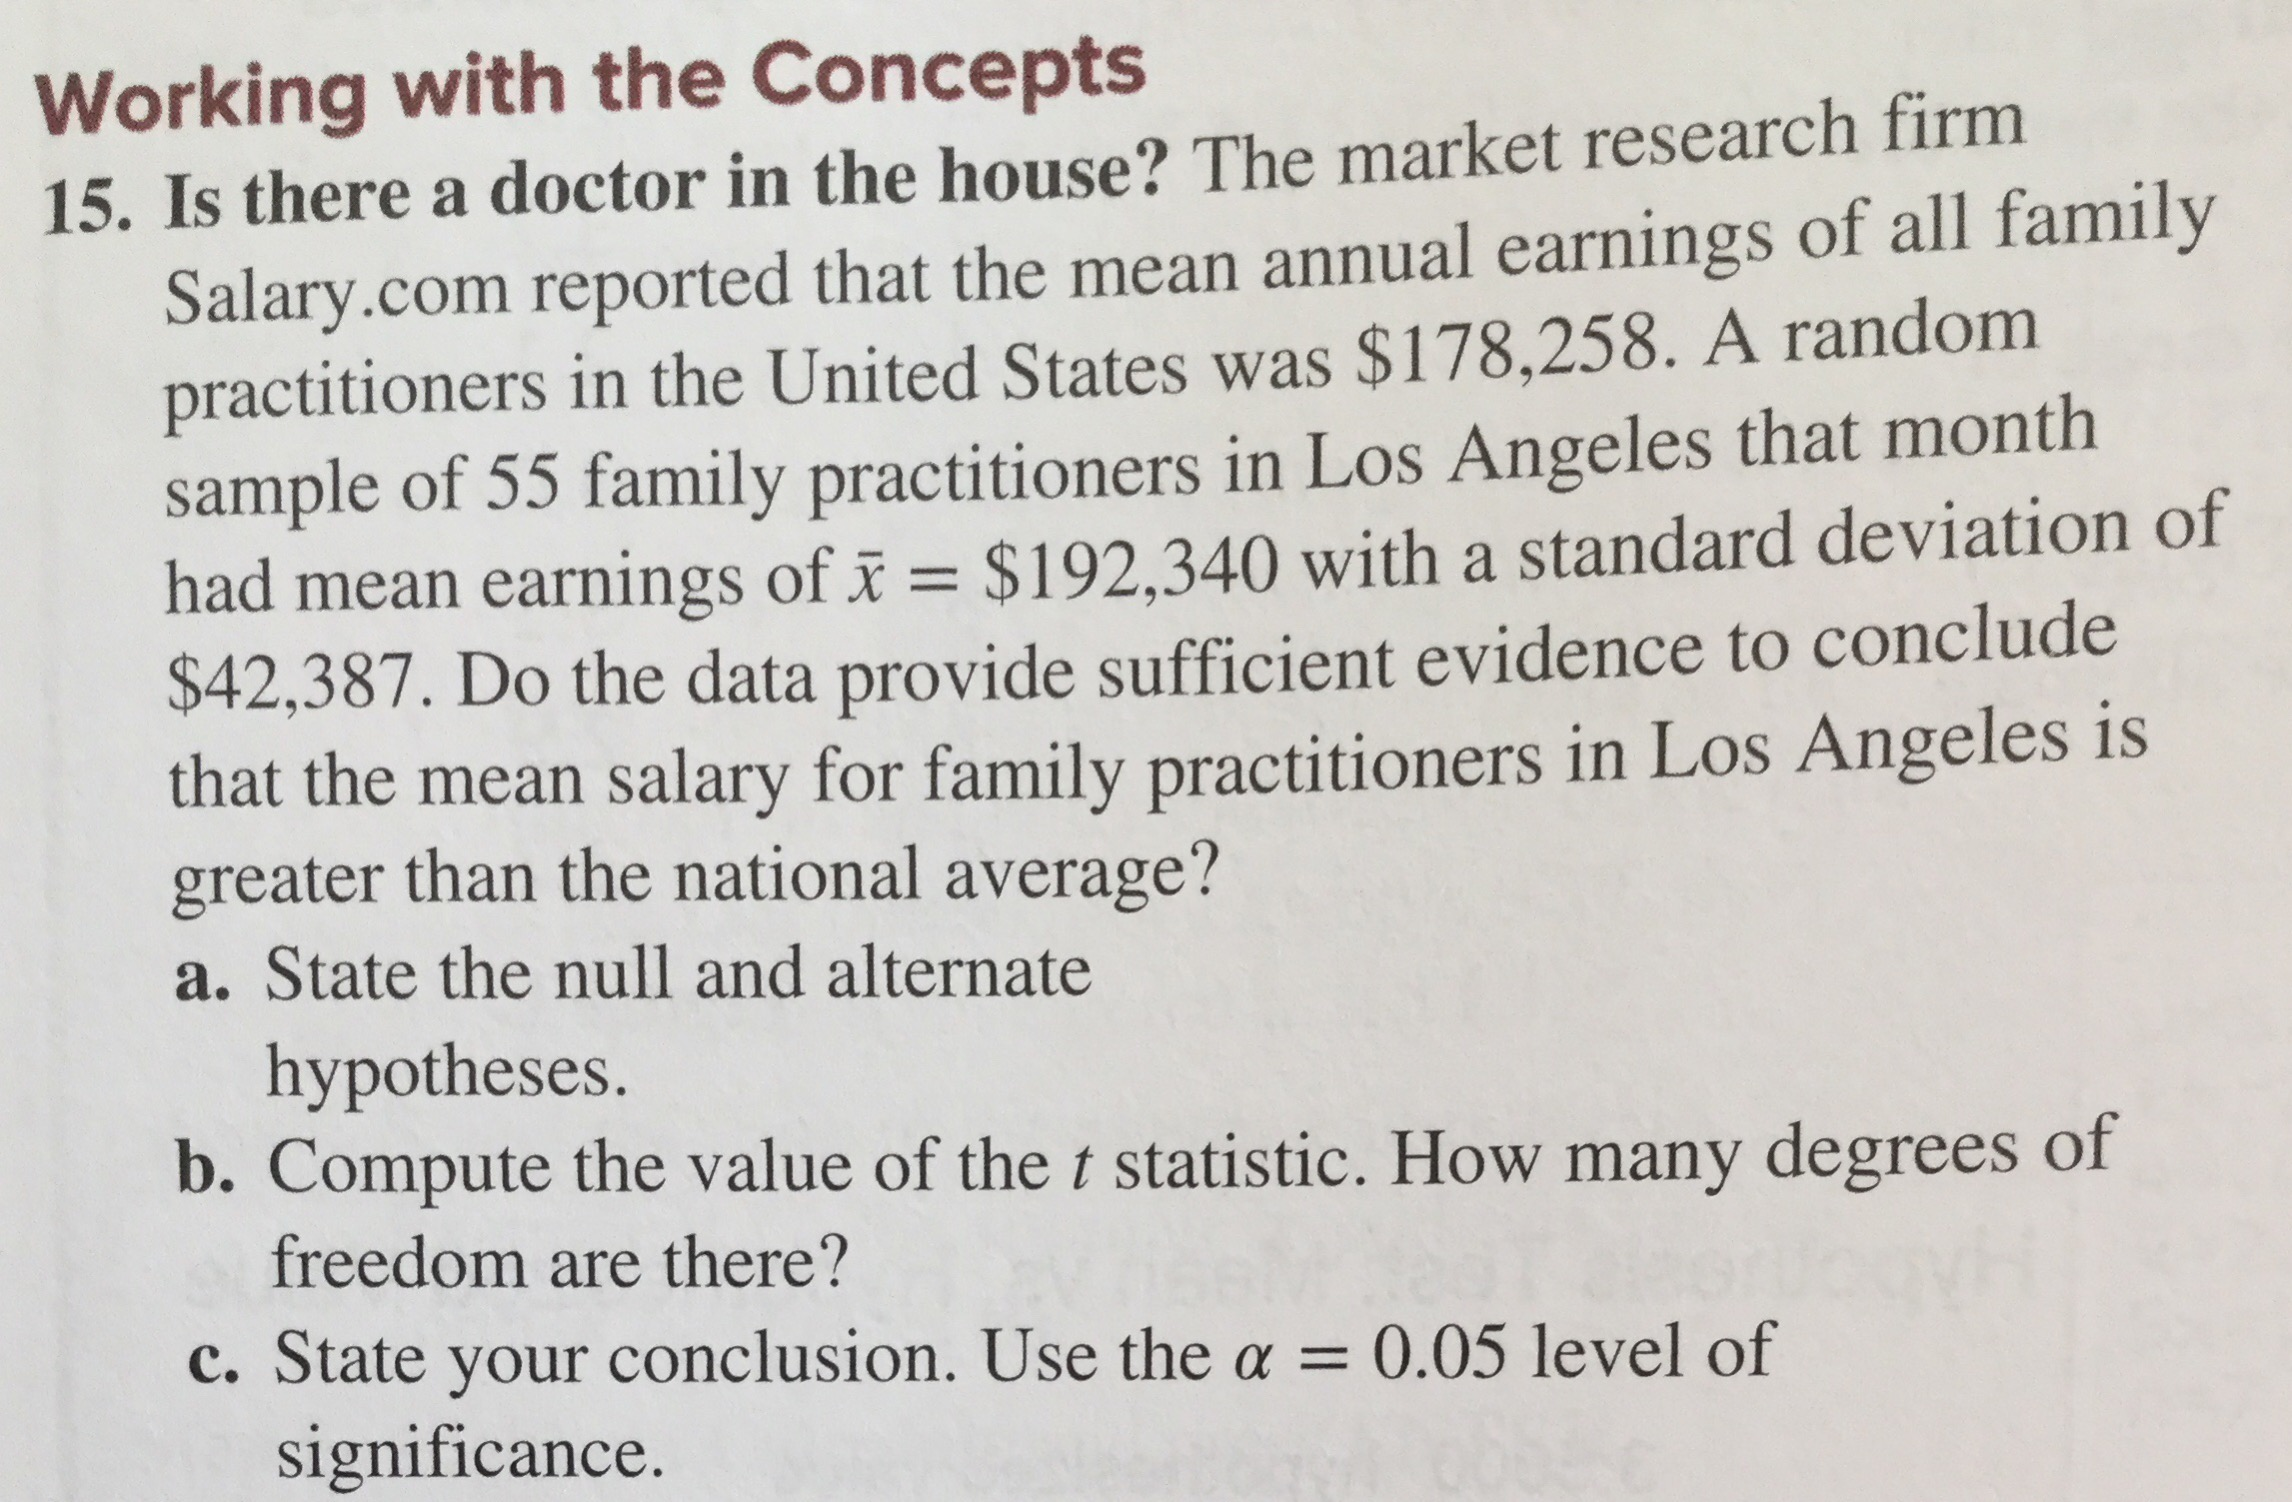 Working with the Concepts 15. Is there a doctor in the house? The market research firm Salary.com reported that the mean annual earnings of all family practitioners in the United States was $178,258. A random sample of 55 family practitioners in Los Angeles that month had mean earnings of i $192,340 with a standard deviation of $42,387. Do the data provide sufficient evidence to conclude that the mean salary for family practitioners in Los Angeles is greater than the national average? State the null and alternate hypotheses. b. Compute the value of the t statistic. How many degrees of freedom are there? c. State your conclusion. Use the a = 0.05 level of significance.